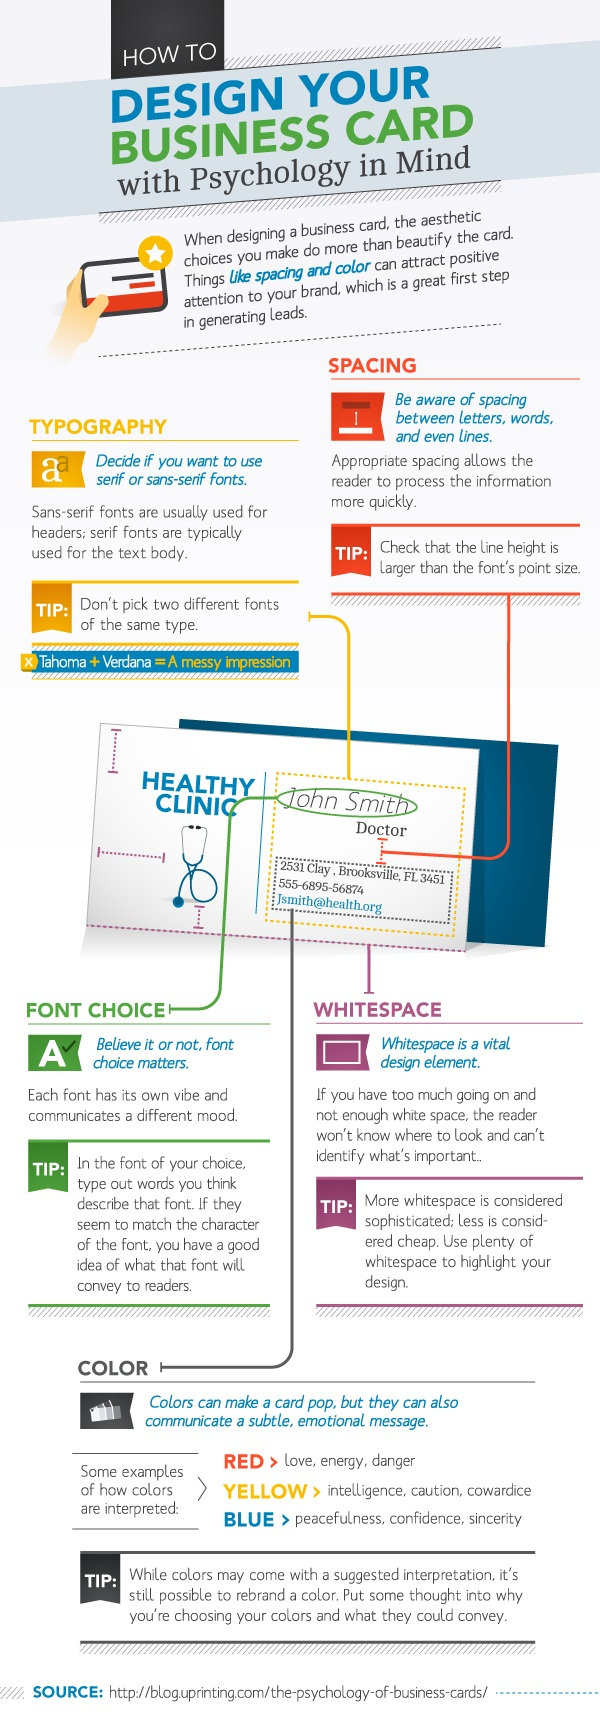 how to design a good business card